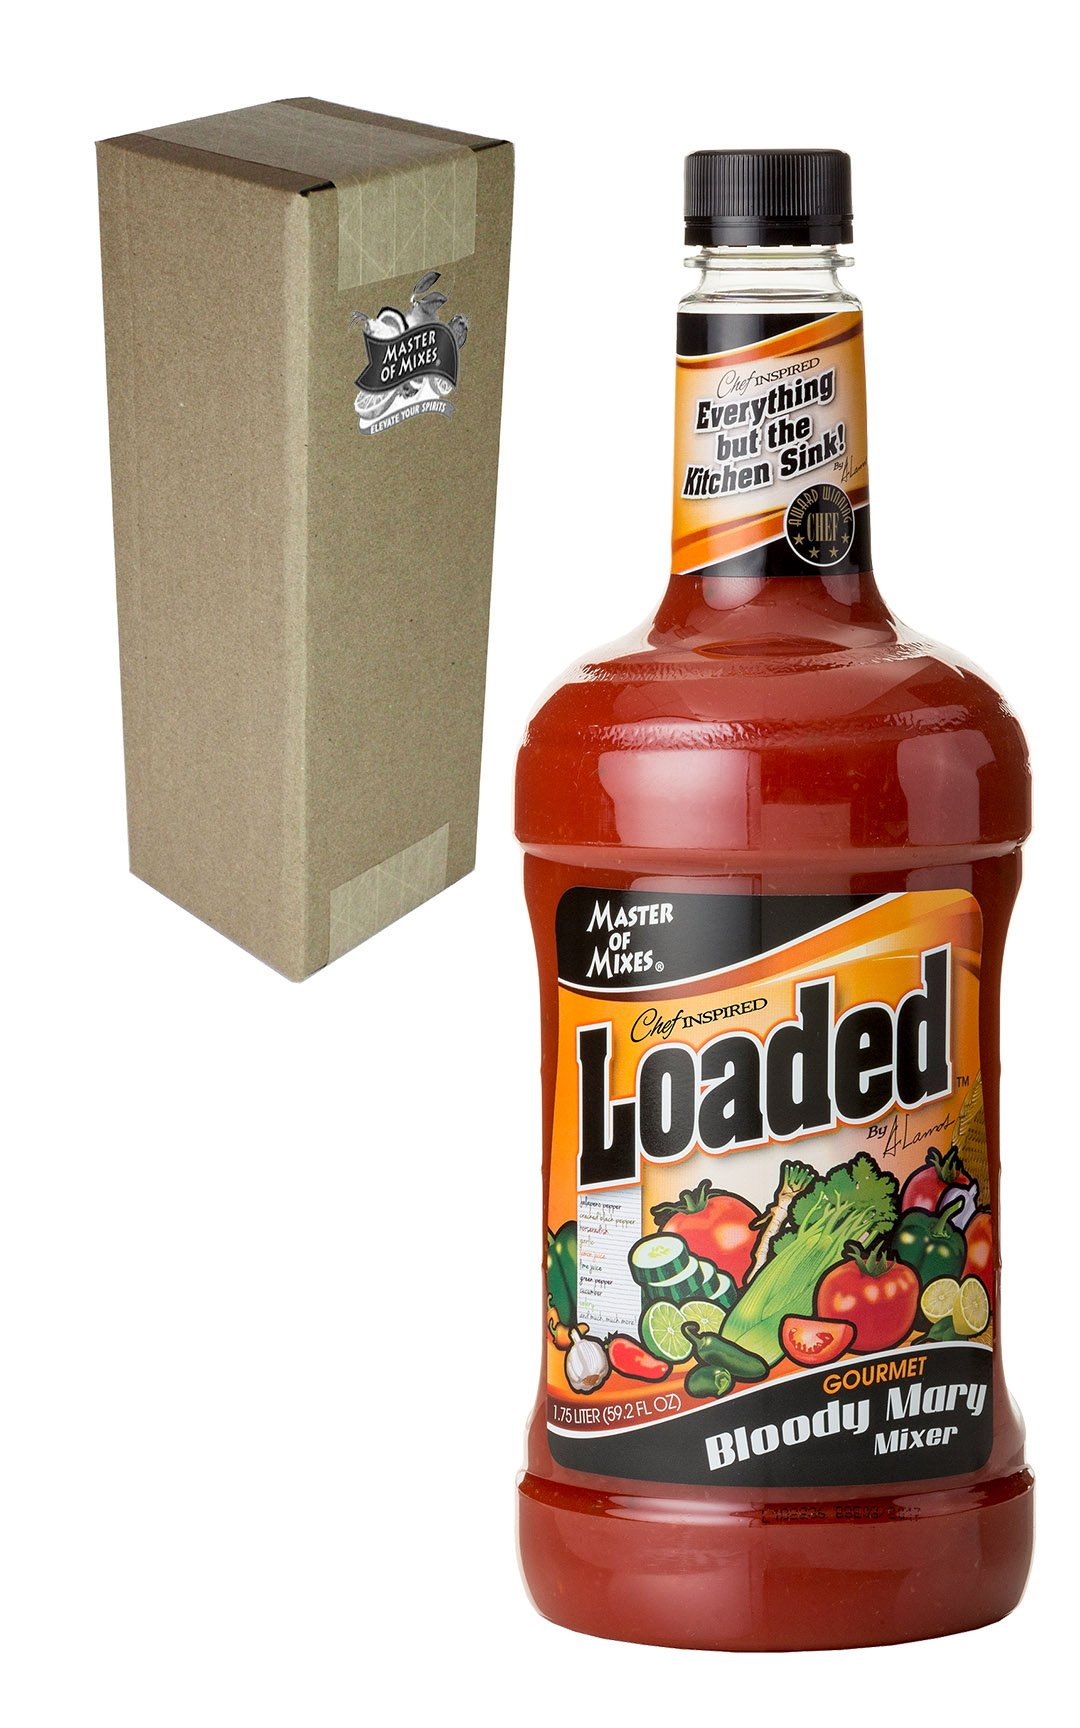 Master of Mixes Bloody Mary Loaded, 59.2 ounces